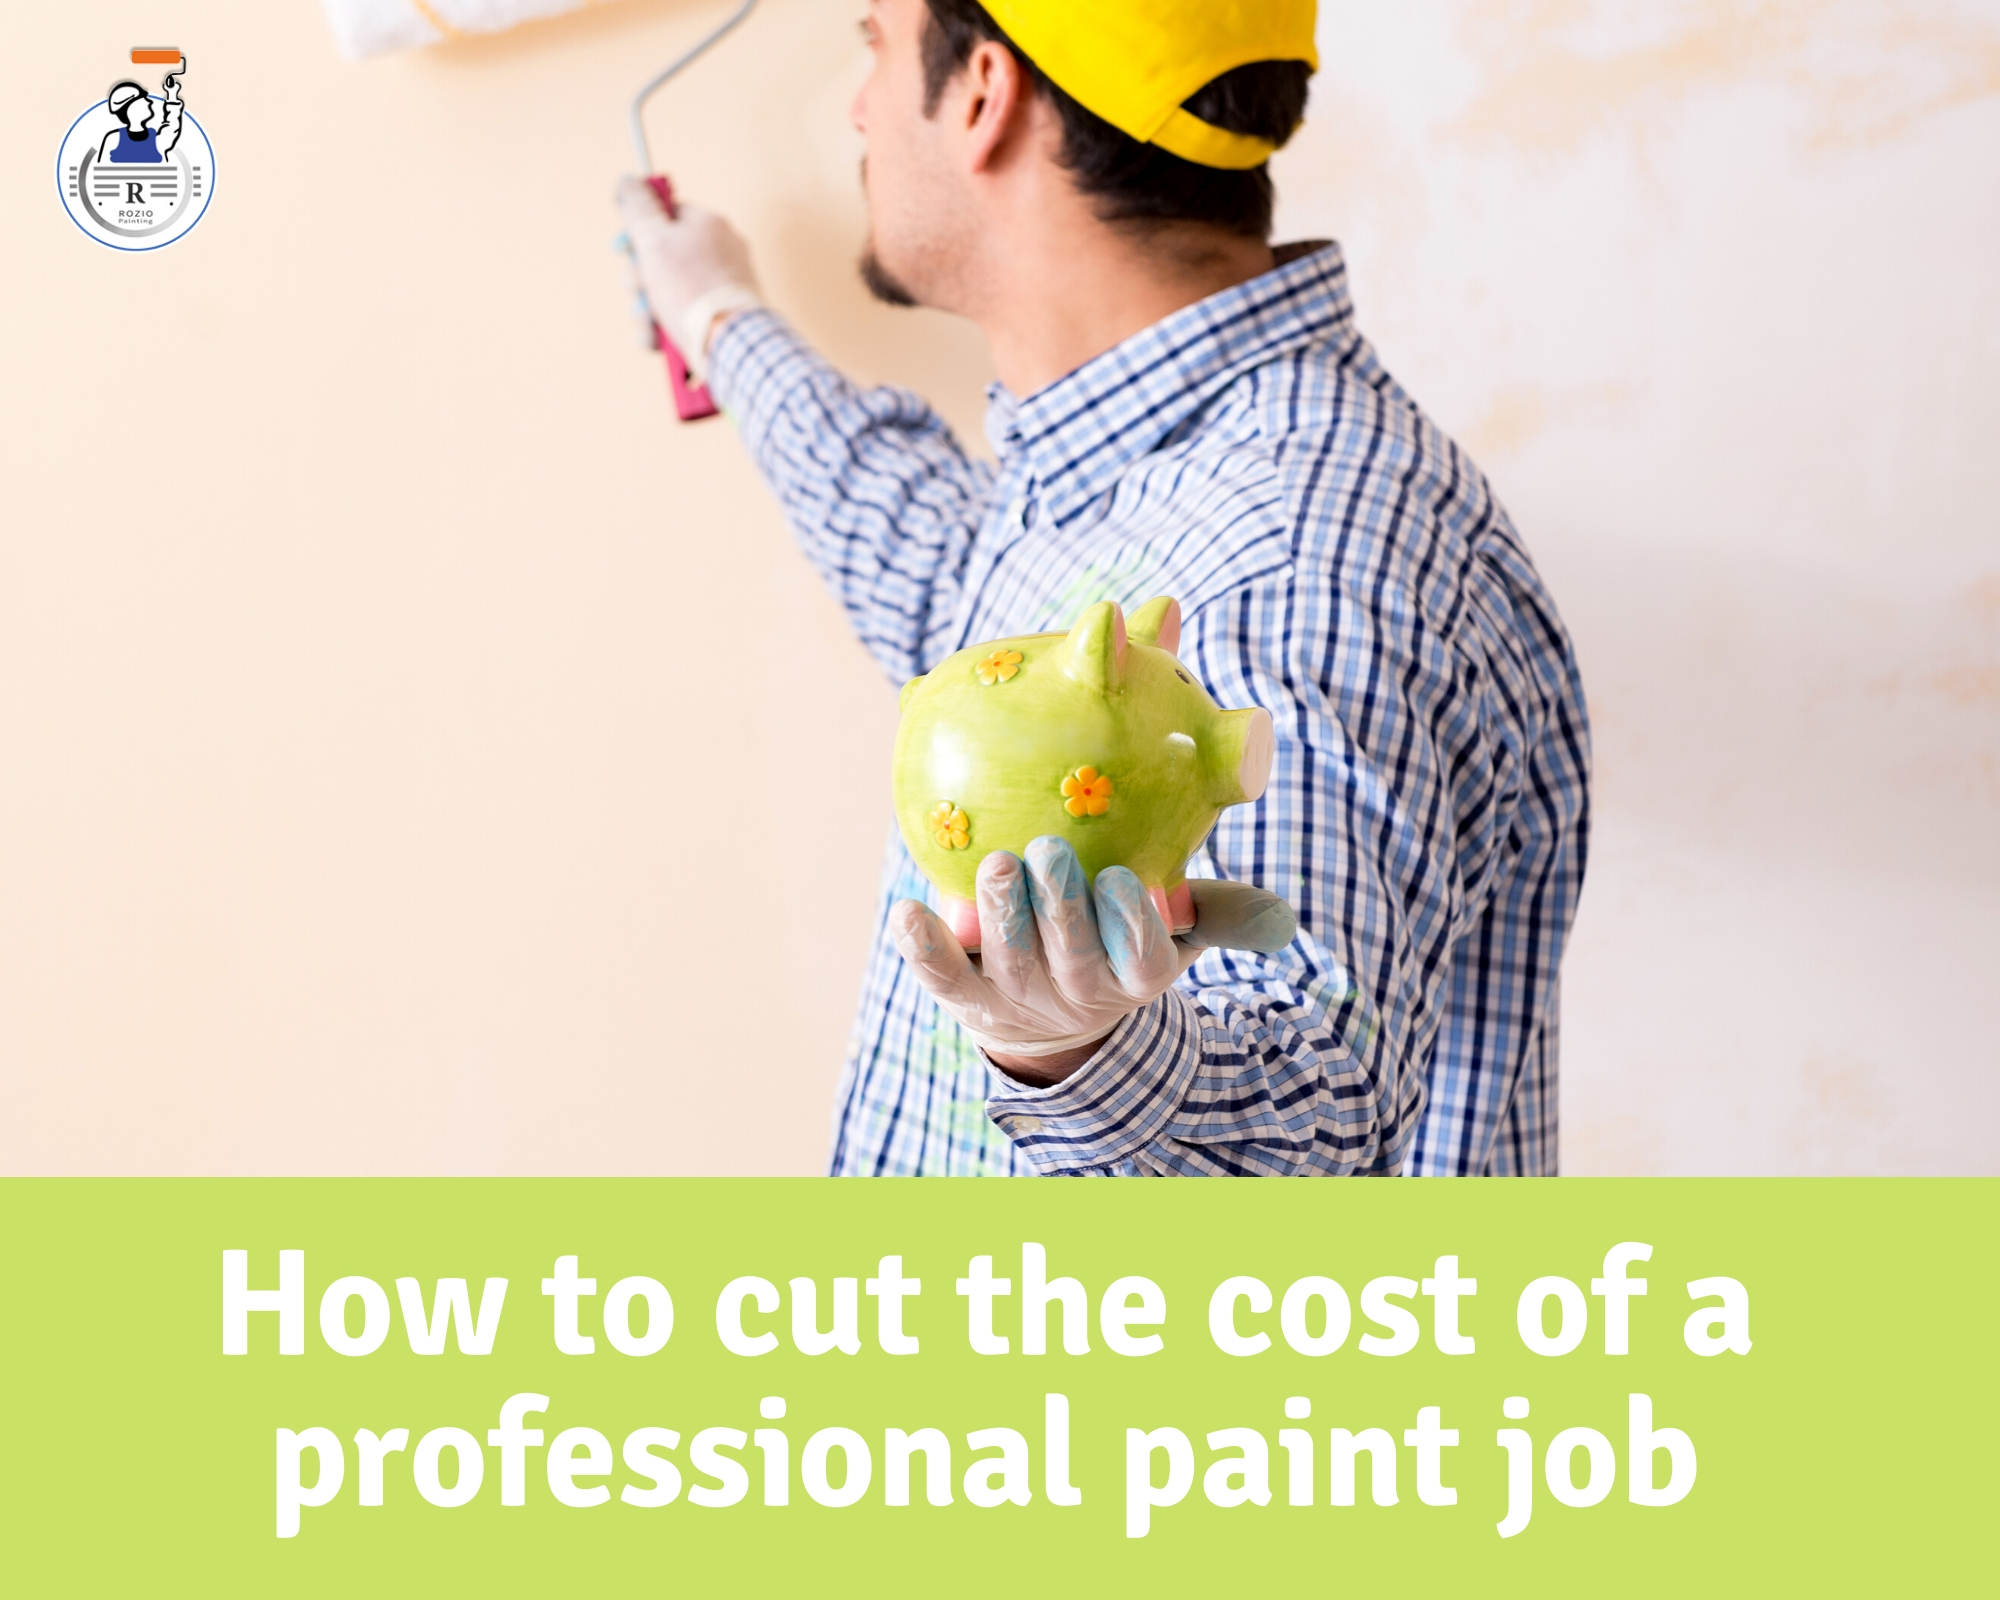 How to cut the costs of a professional paint job